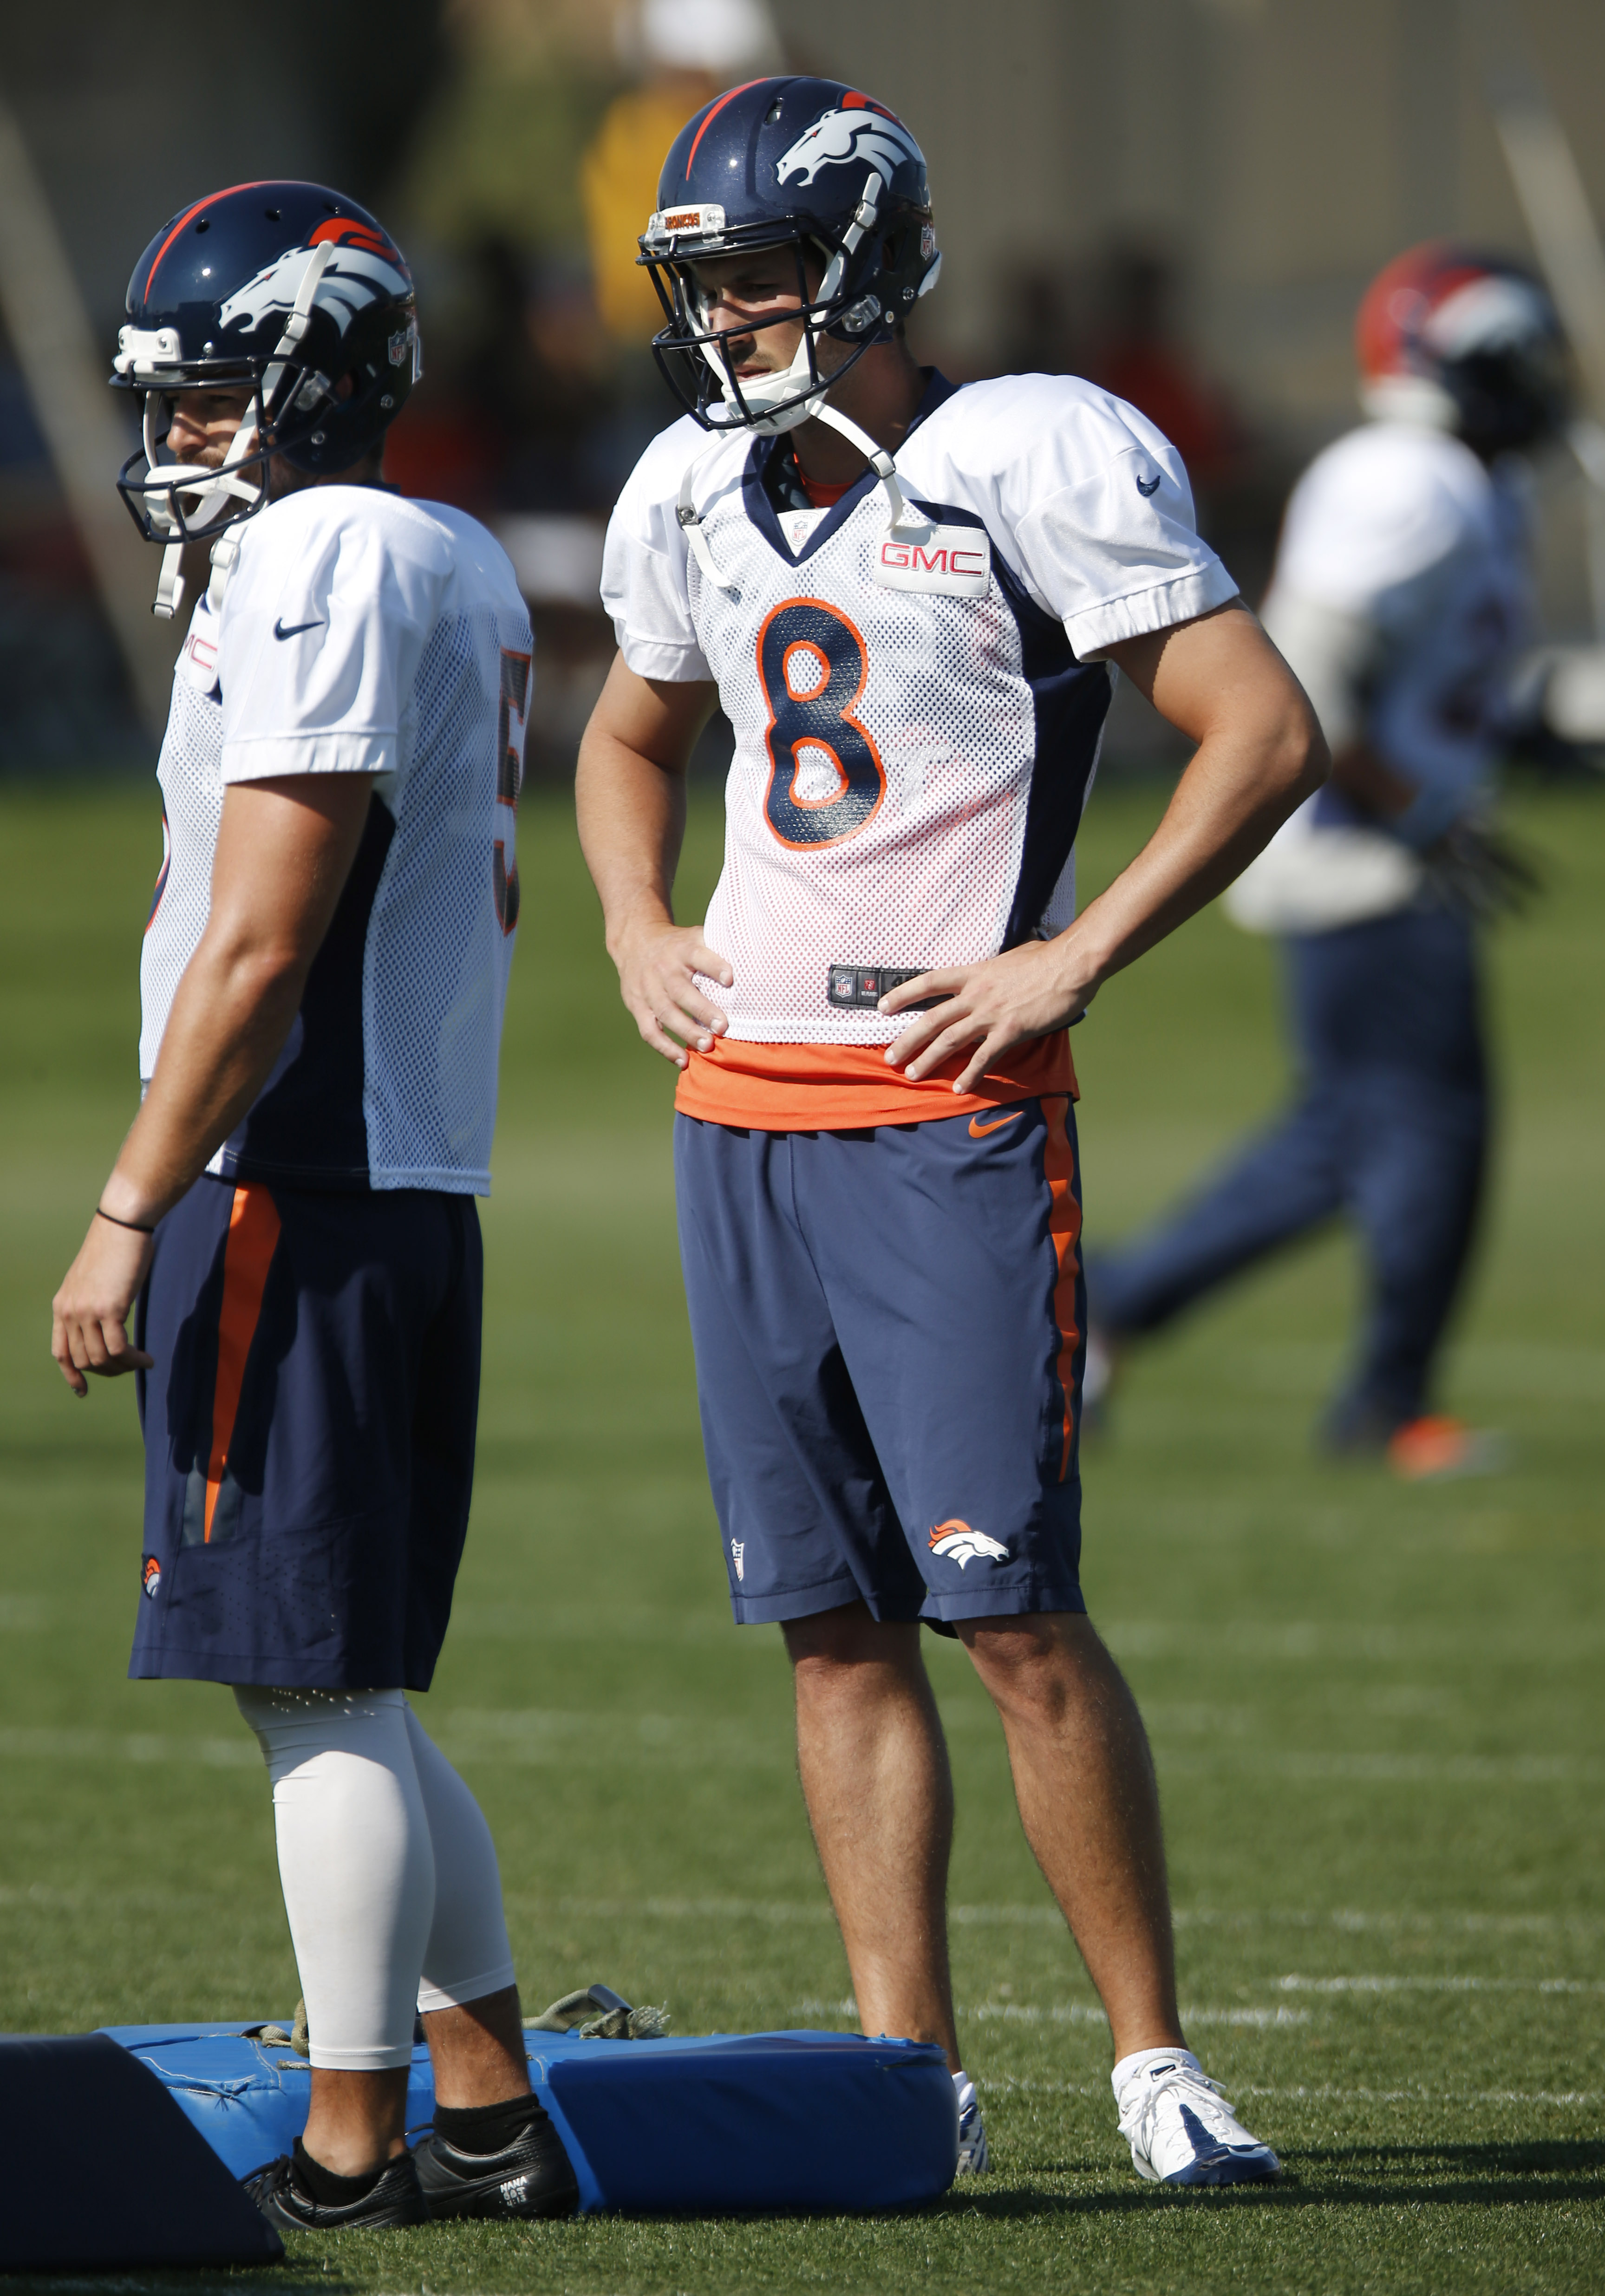 Denver Broncos kicker Brandon McManus, right, looks on with punter Spencer Lanning during the morning session at the team's NFL football training camp Tuesday, Aug. 18, 2015, in Englewood, Colo. (AP Photo/David Zalubowski)